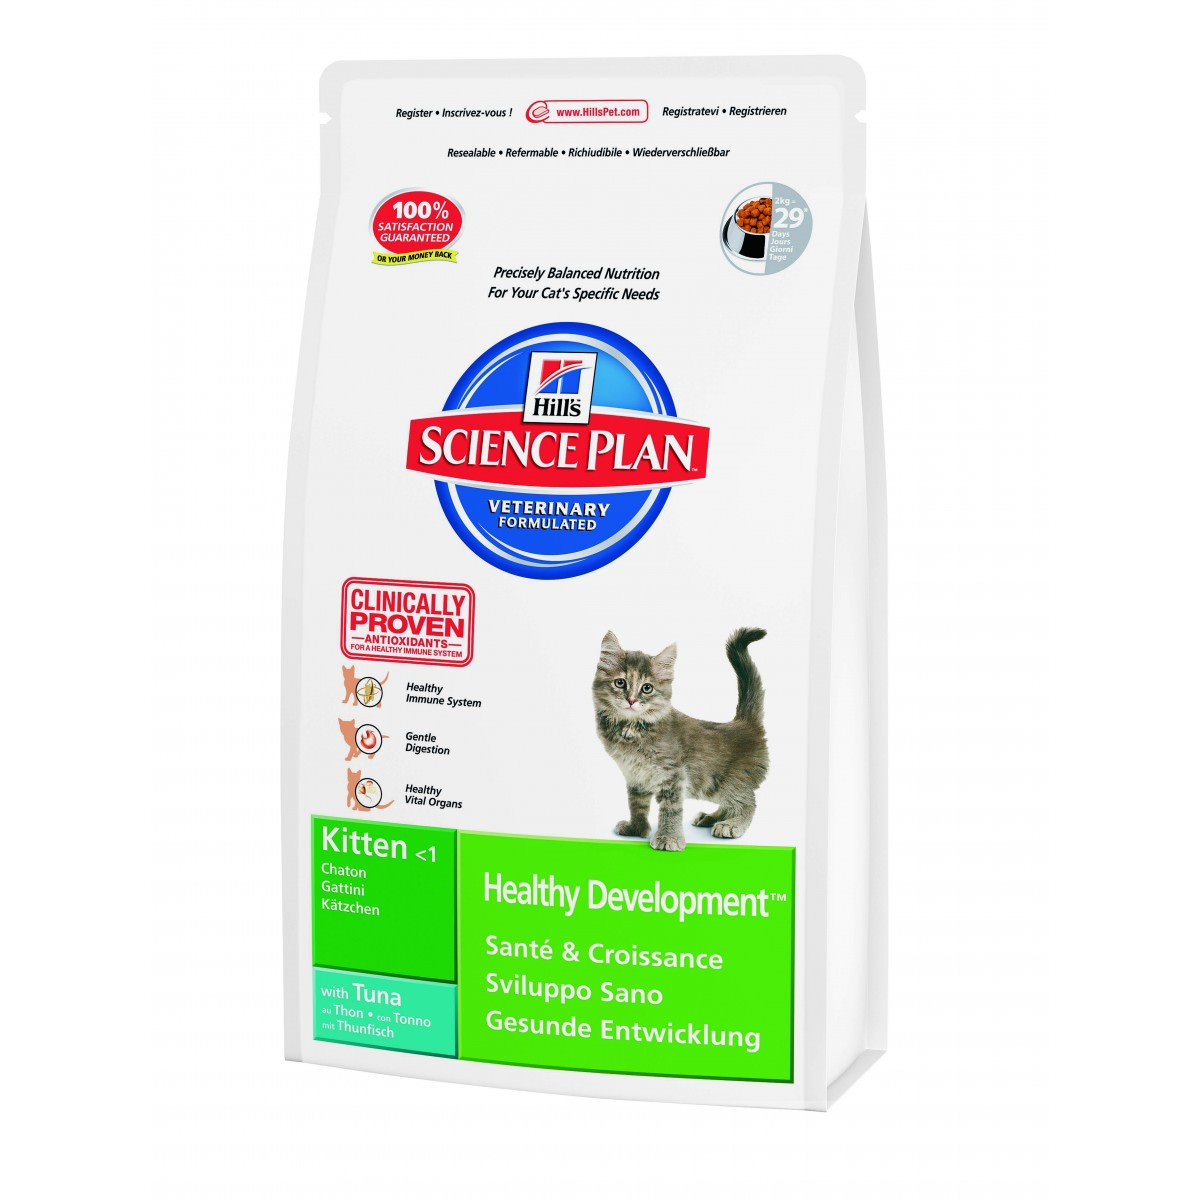 Kitten Healthy Development con tonno